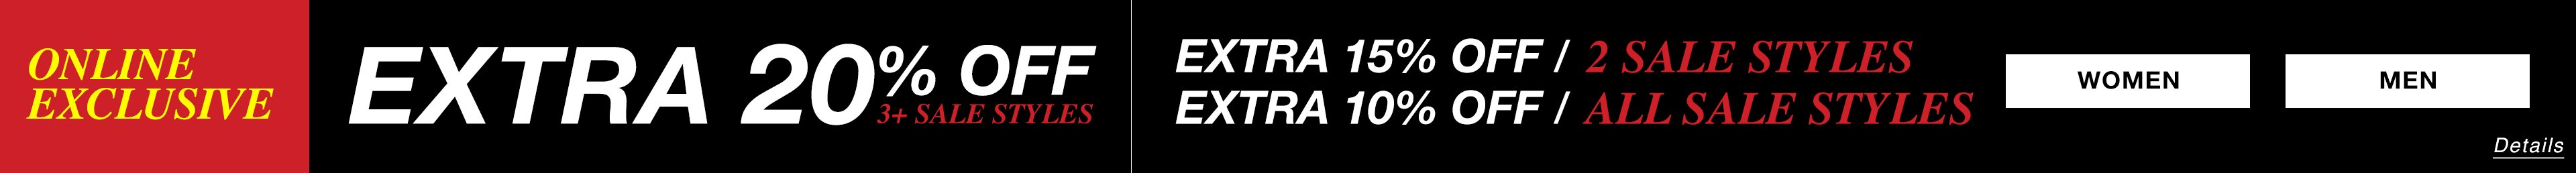 Extra 20% off when you buy 4 or more sale styles